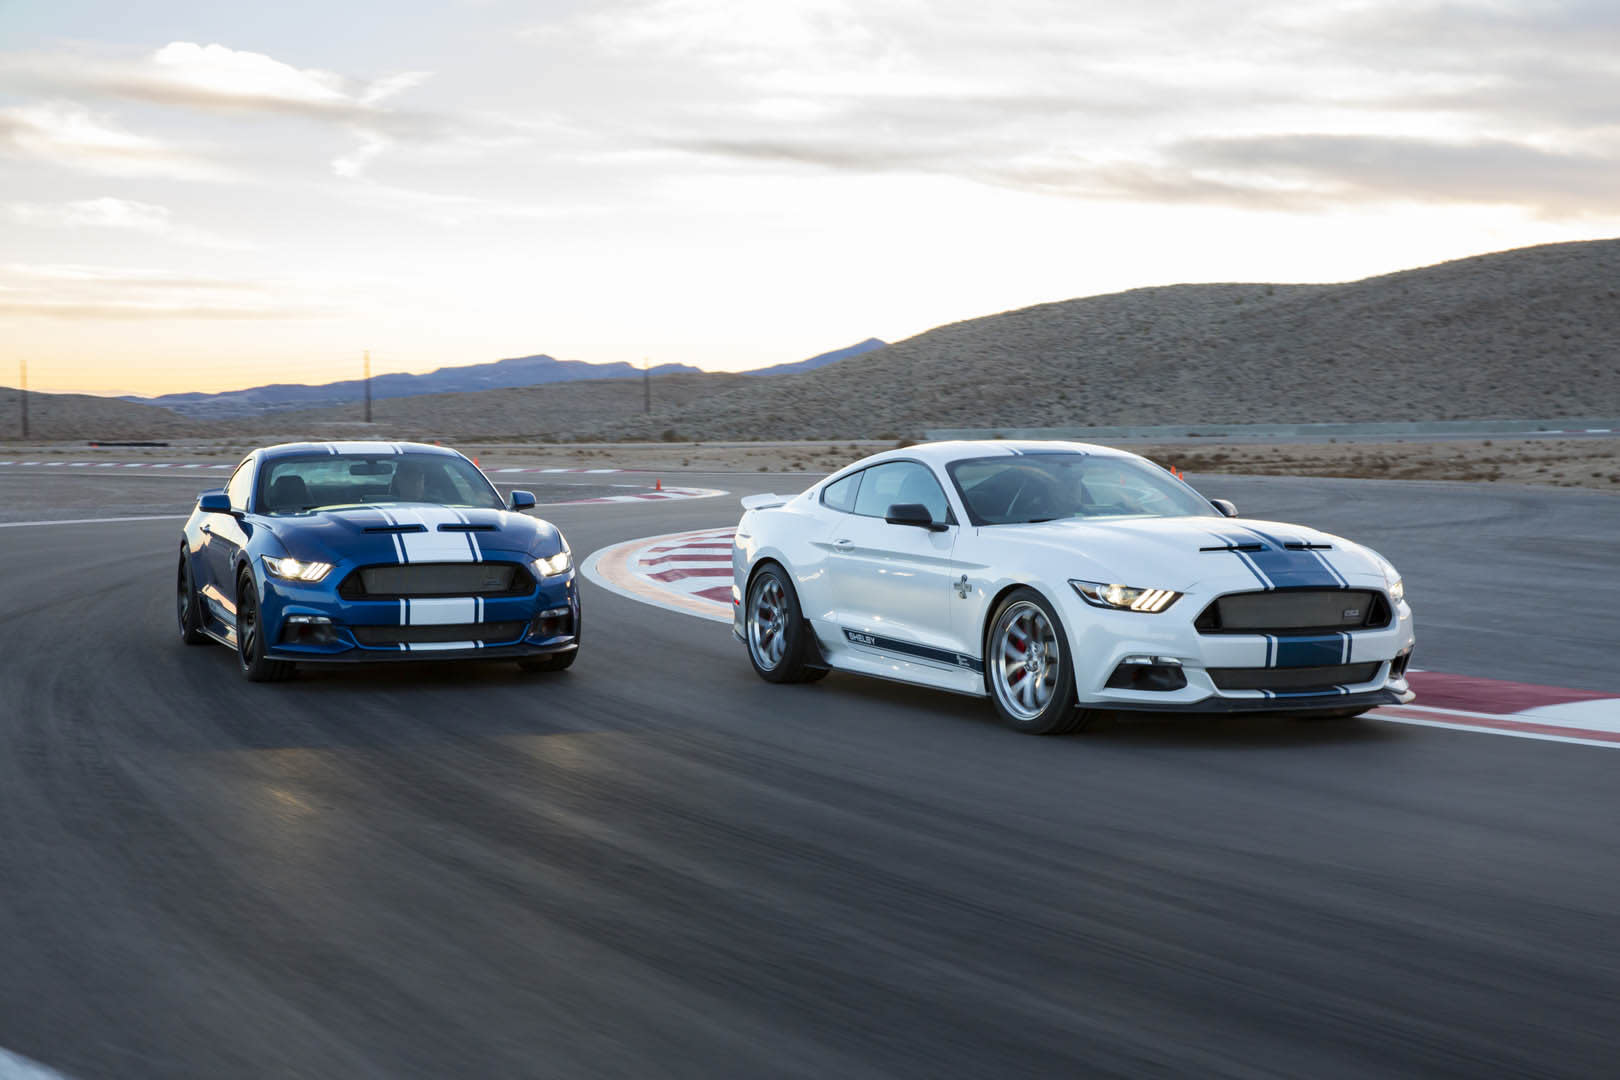 Shelby surprises with 2017 Mustang Super Snake